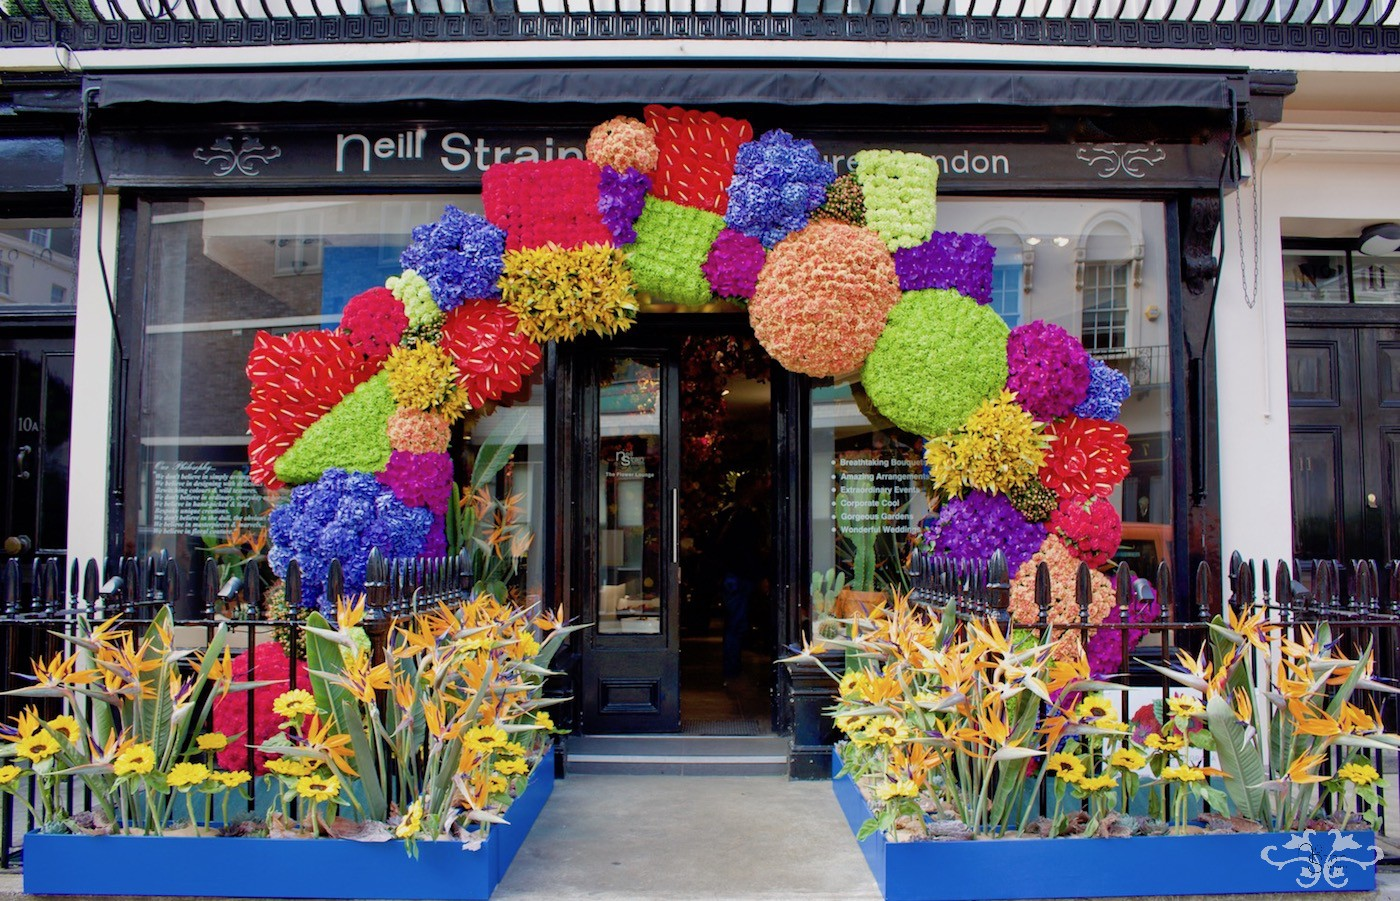 Neill Strain Floral Couture was awarded Overall Best Floral Display in Belgravia In Bloom with his Frida Kahlo inspired design.